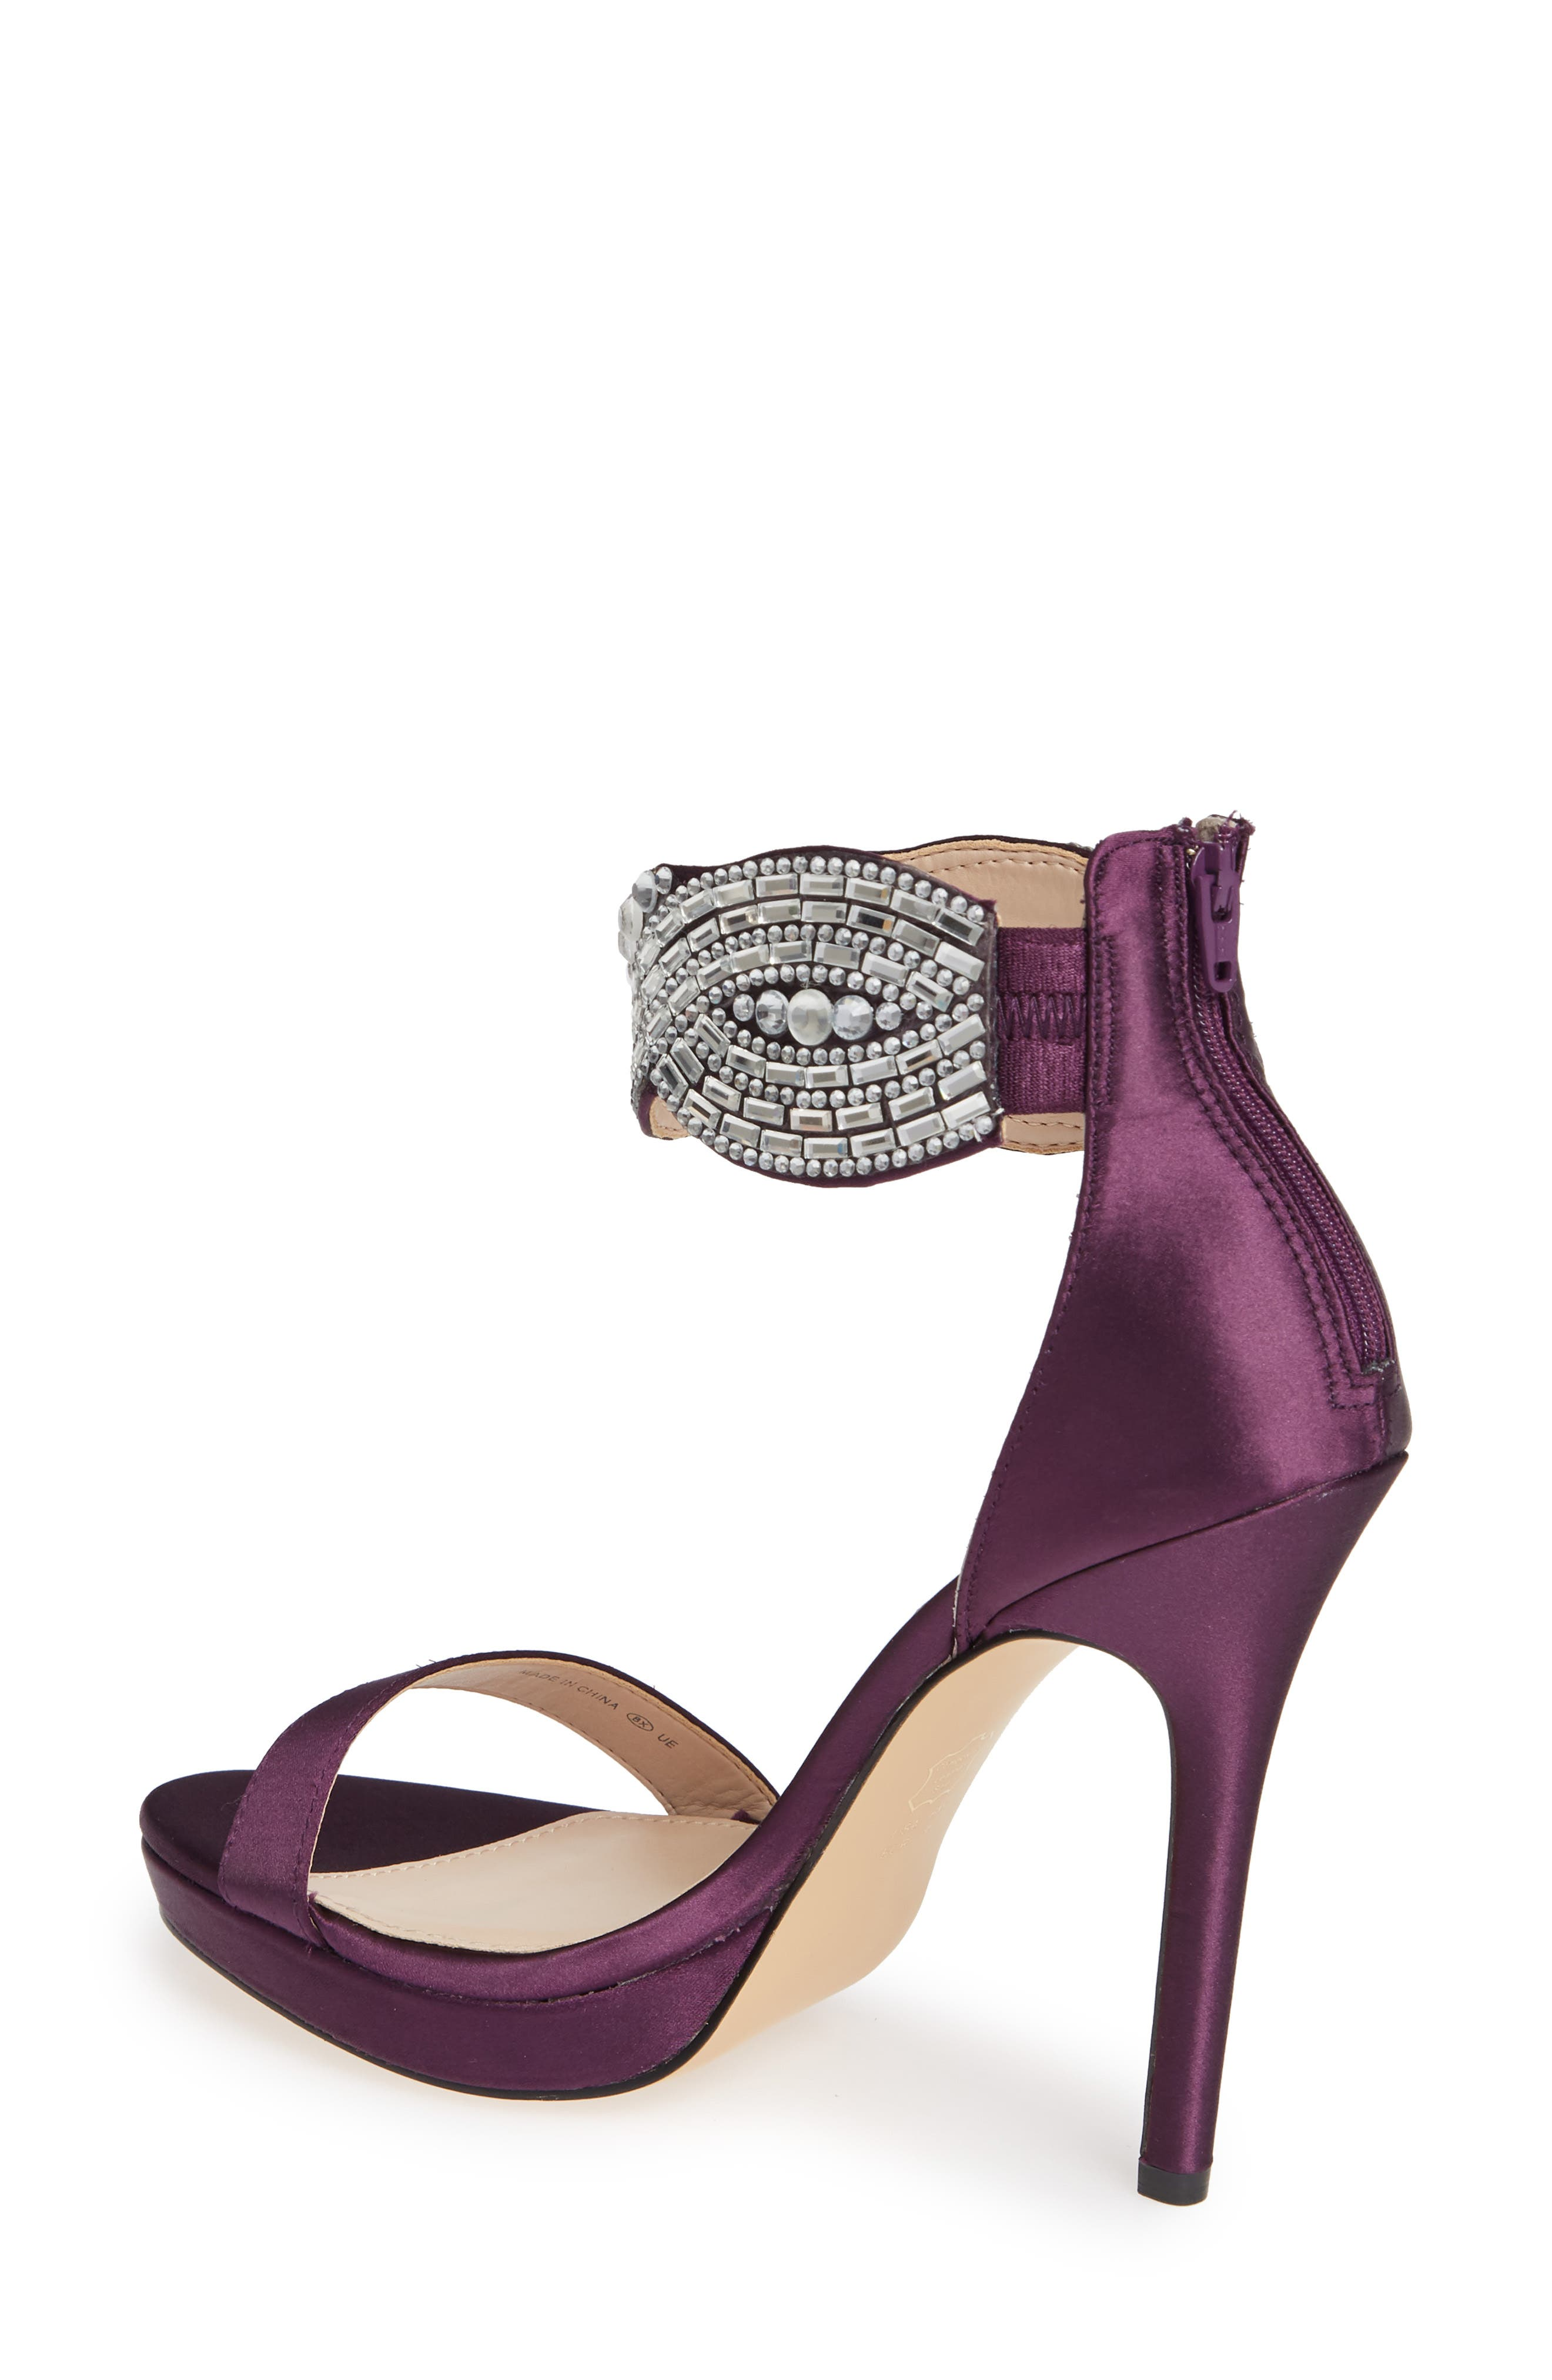 Fayth Jeweled Ankle Cuff Sandal,                             Alternate thumbnail 2, color,                             EGGPLANT SATIN